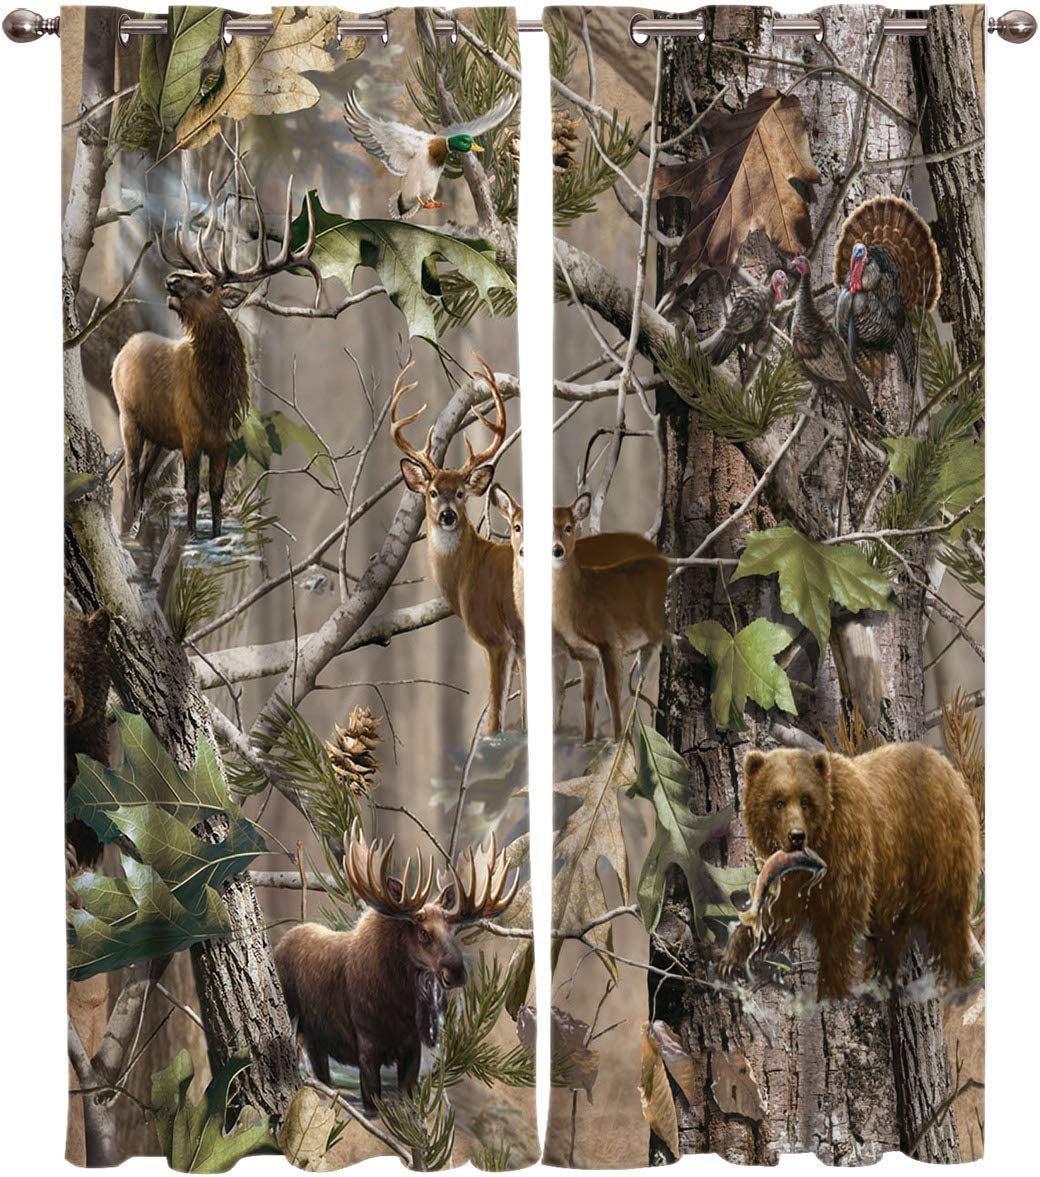 Window Panel Curtain Sets, Realtree Camo Rustic Deer Elk Bird Bear Home Drapes Decor for Living Room Kitchen Bedroom,, Set of 2 Panels, 1 Pair Curtains- (40x63inch x 2)